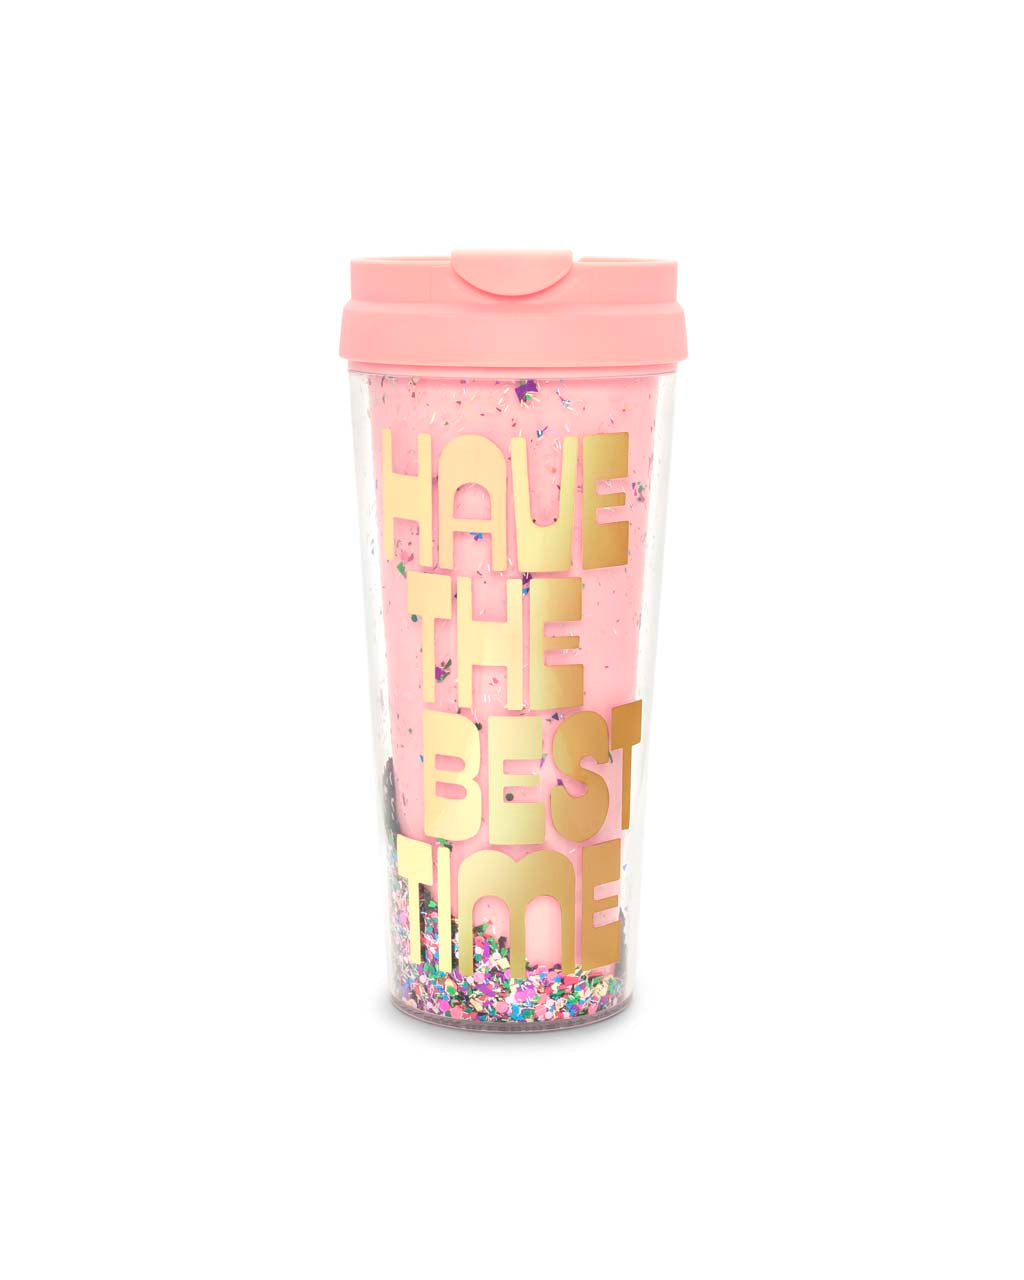 This mug comes in pink, with 'Have The Best Time' printed in gold on the side.